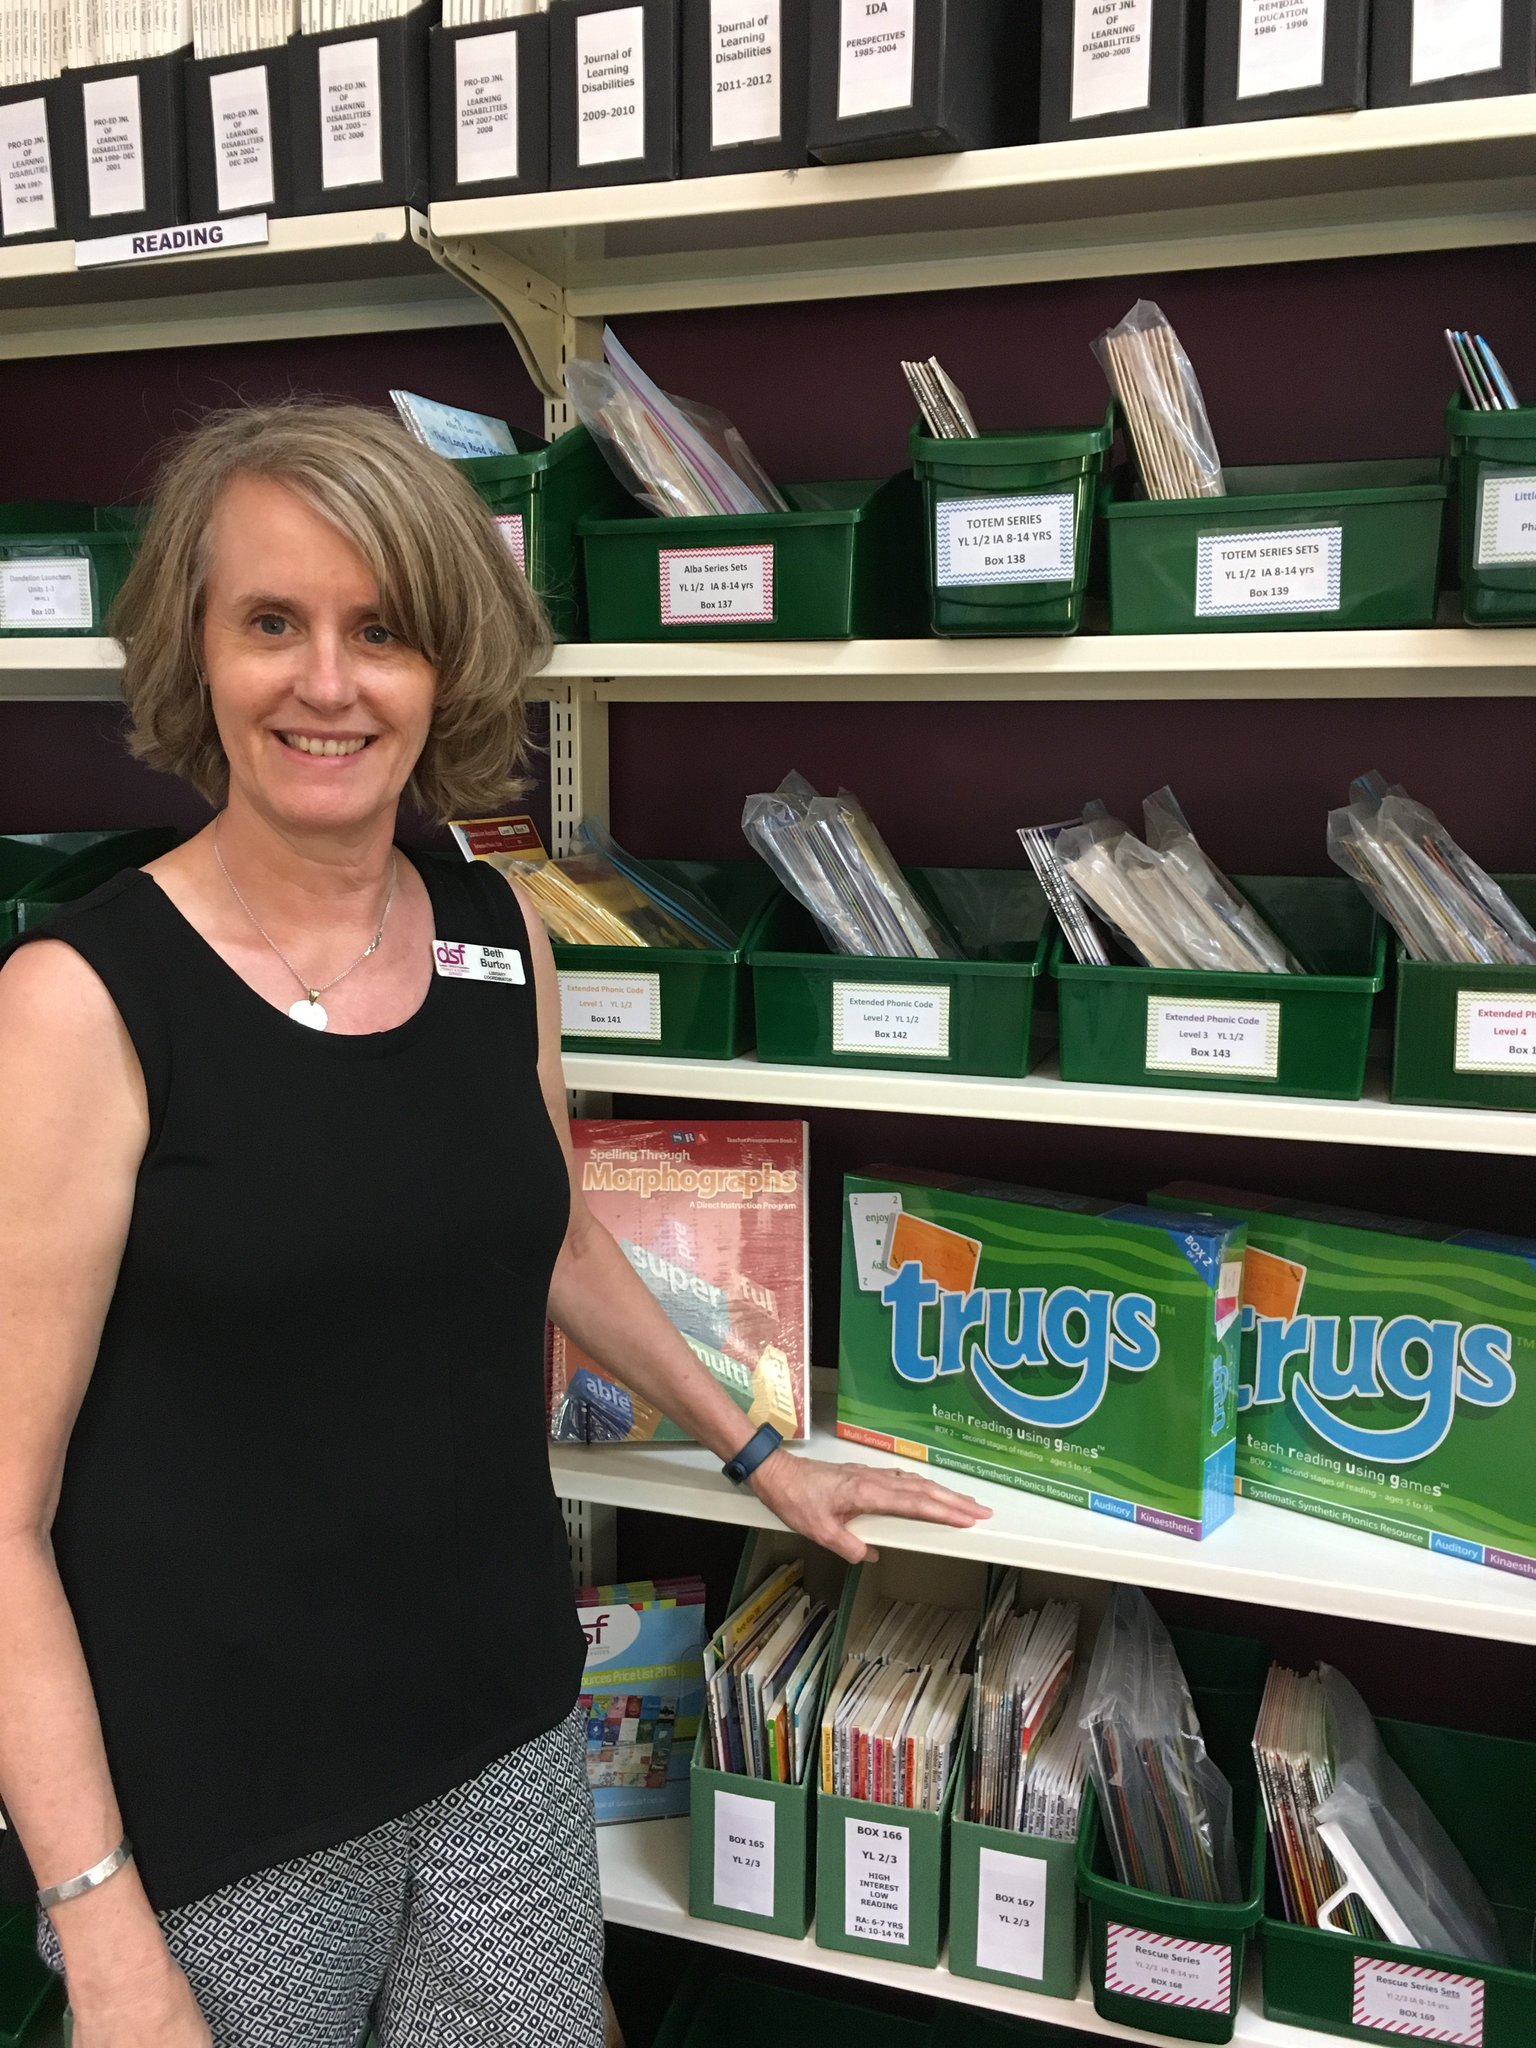 New library resources for @DyslexiaSPELD as part of the #Community100 grant #Lions100 https://t.co/3YpFC90Z7T https://t.co/gR1G5BMf8U